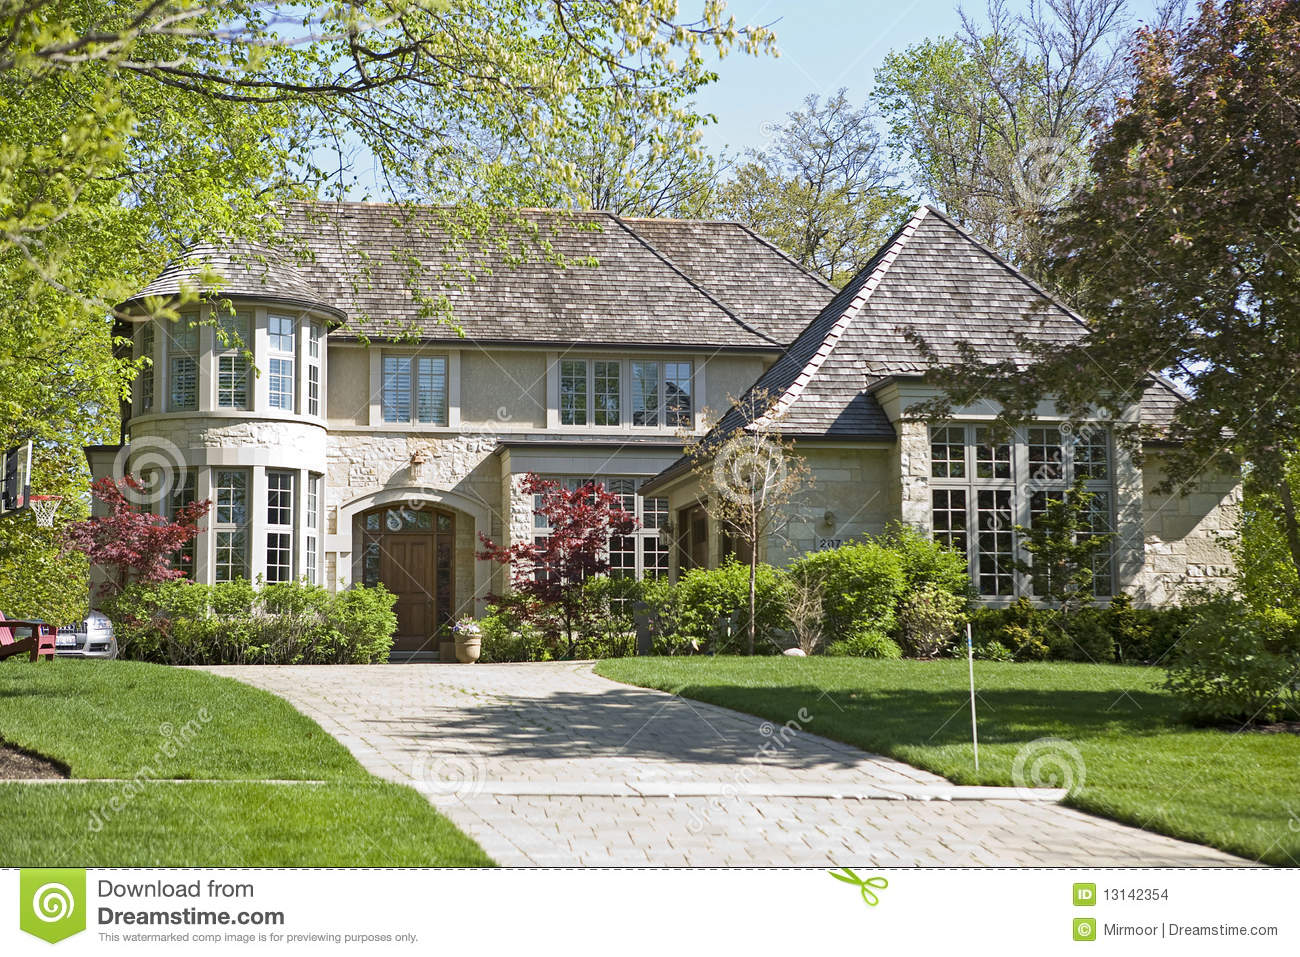 American Home And Garden Stock Photo Image Of Green